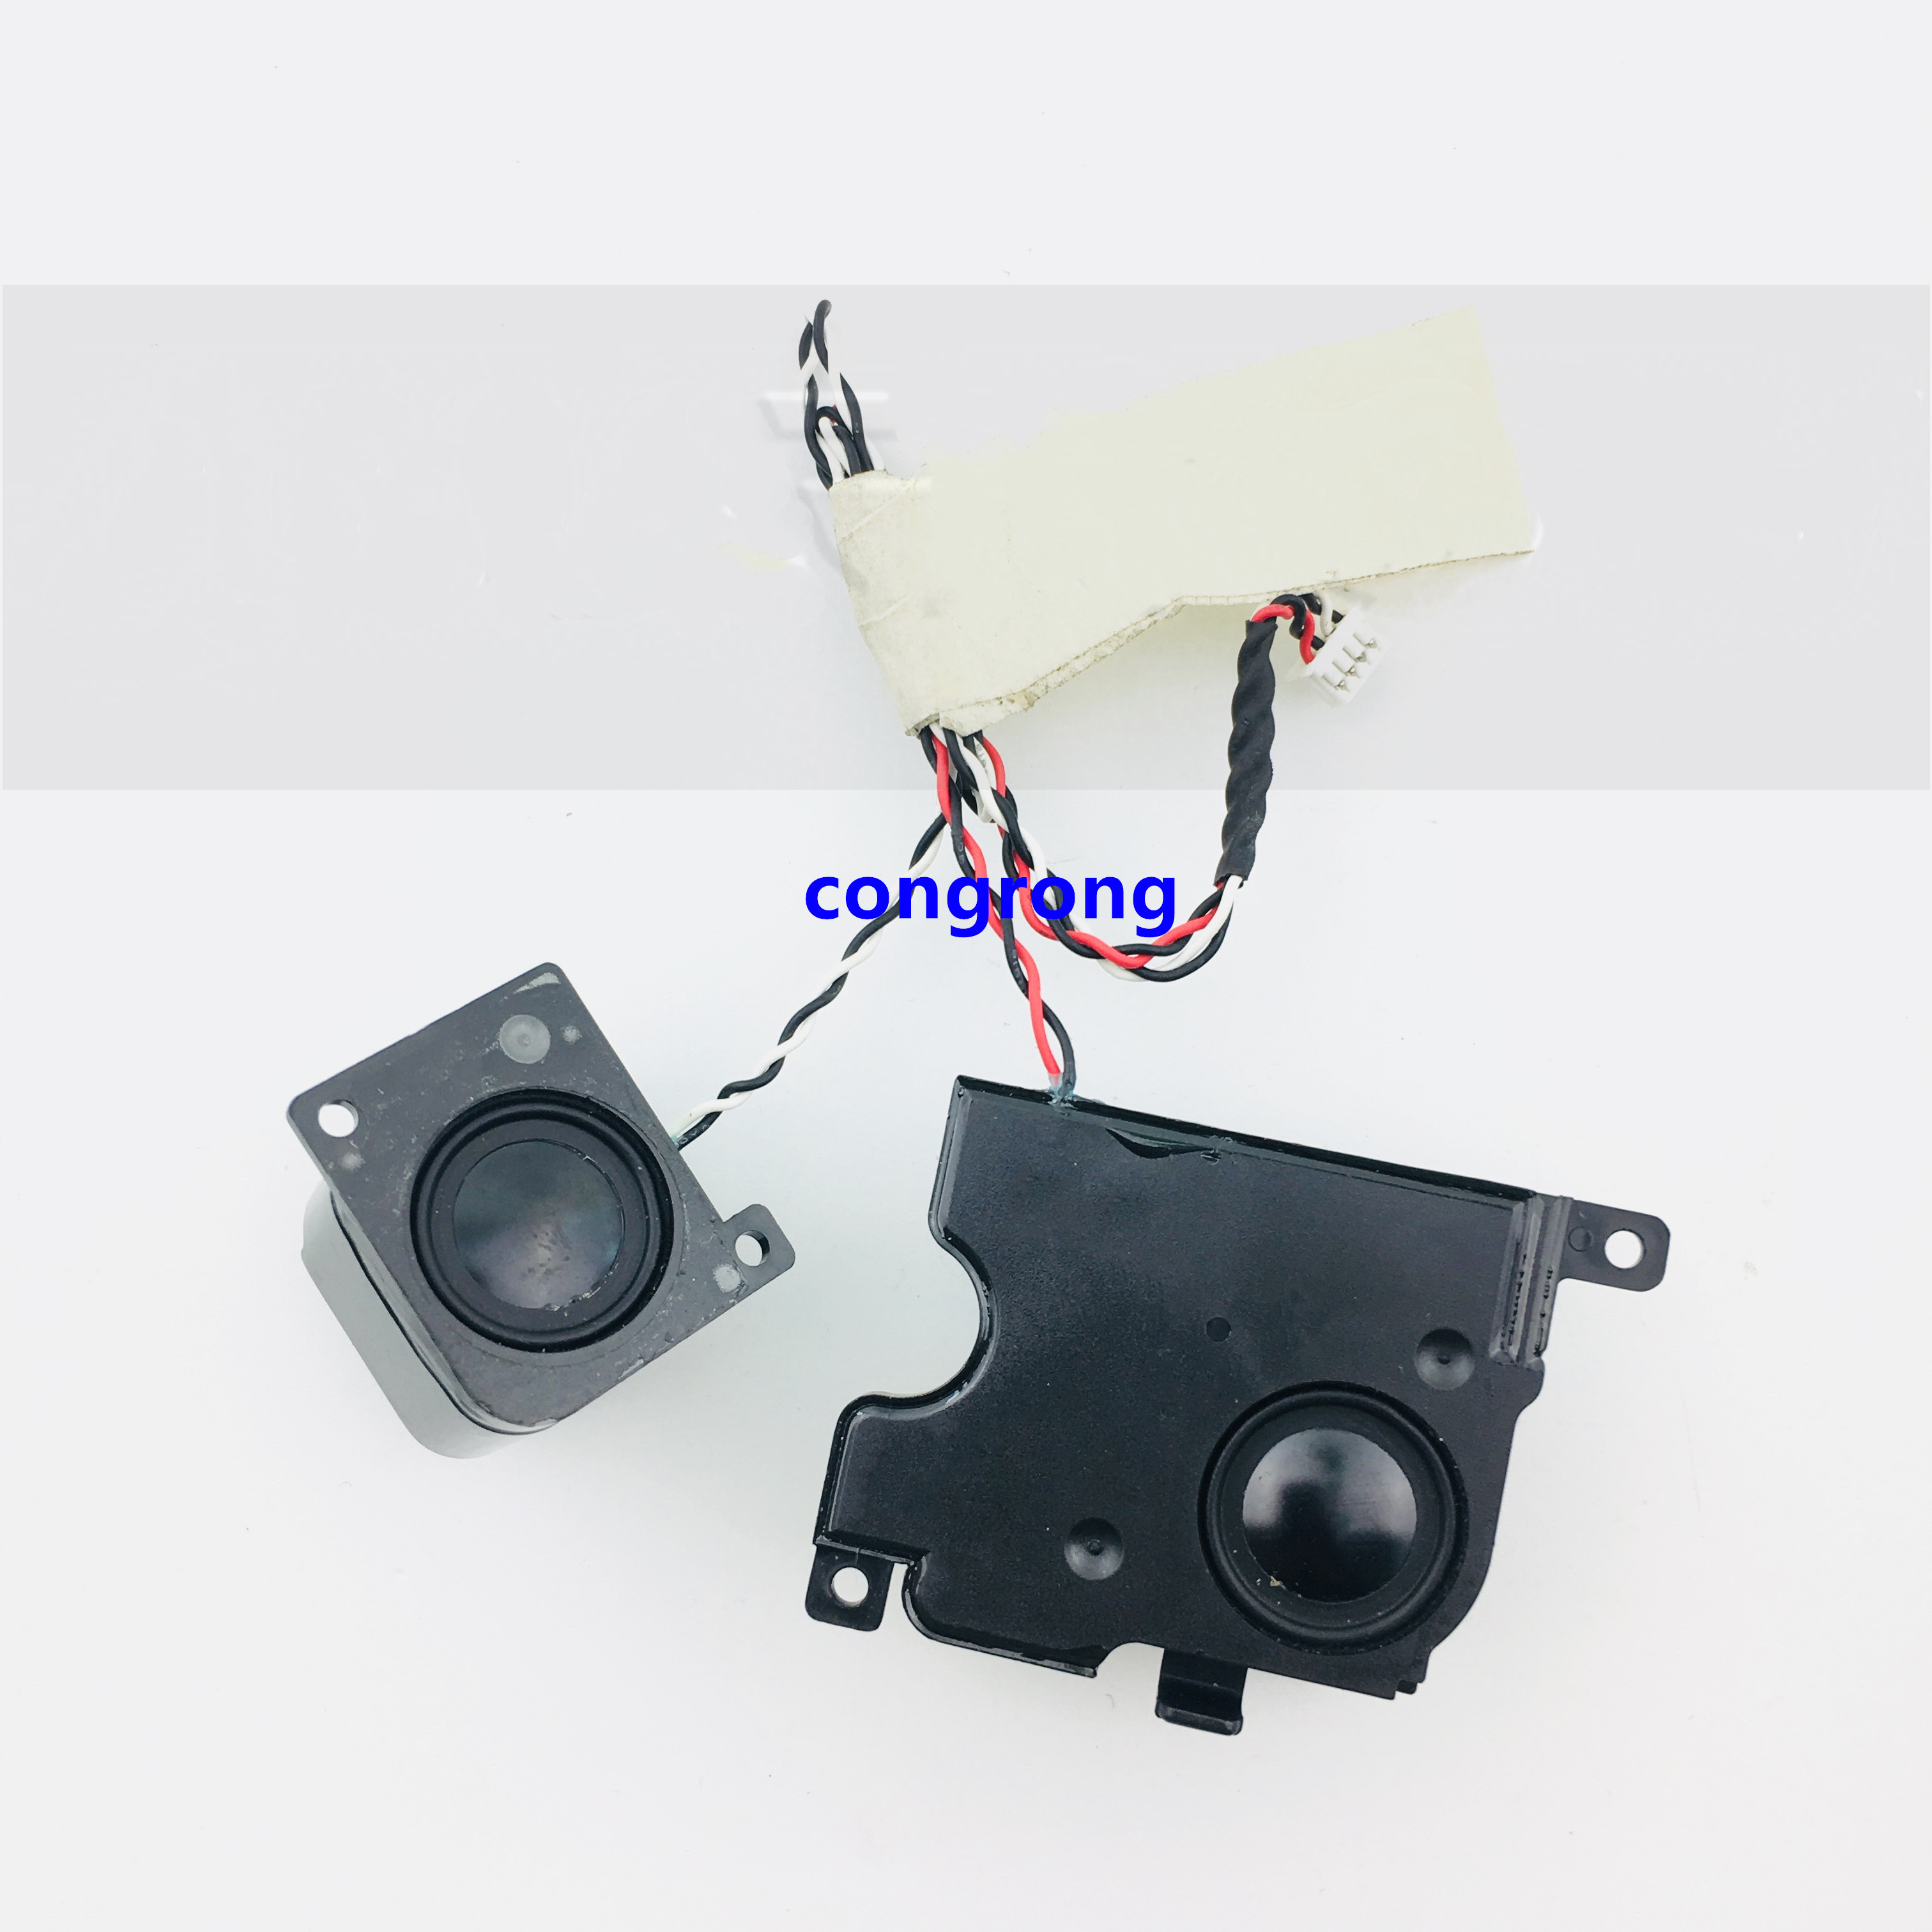 Laptop Internal Speakers For SAMSUNG NP300E5A NP305E5A NP300E5C NP300E5Z NP300E7A NP305E7A Built-in Speaker L&R